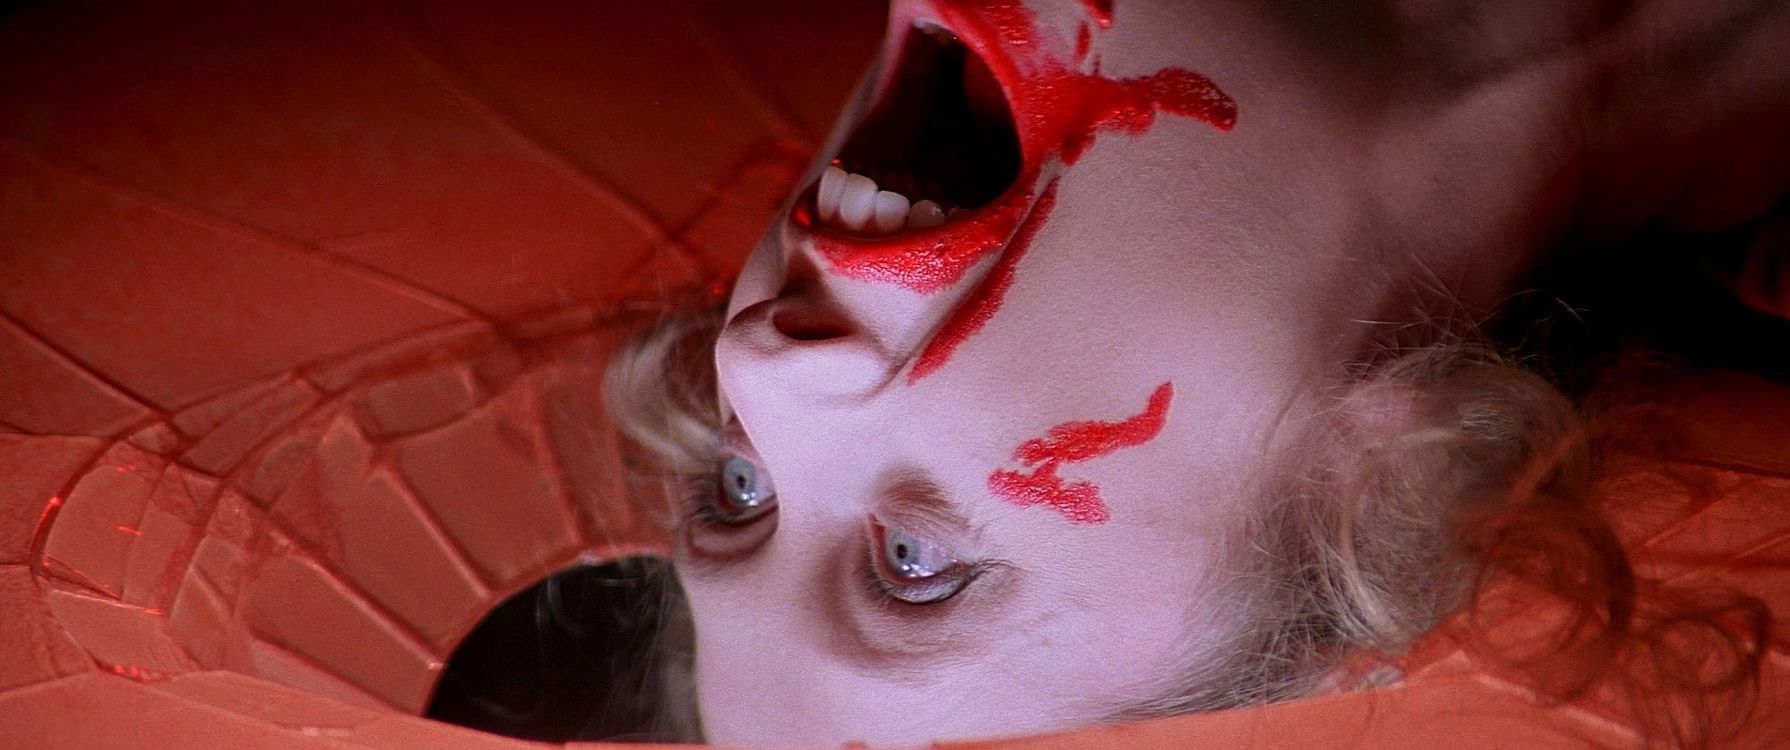 Dario Argento's Dreams